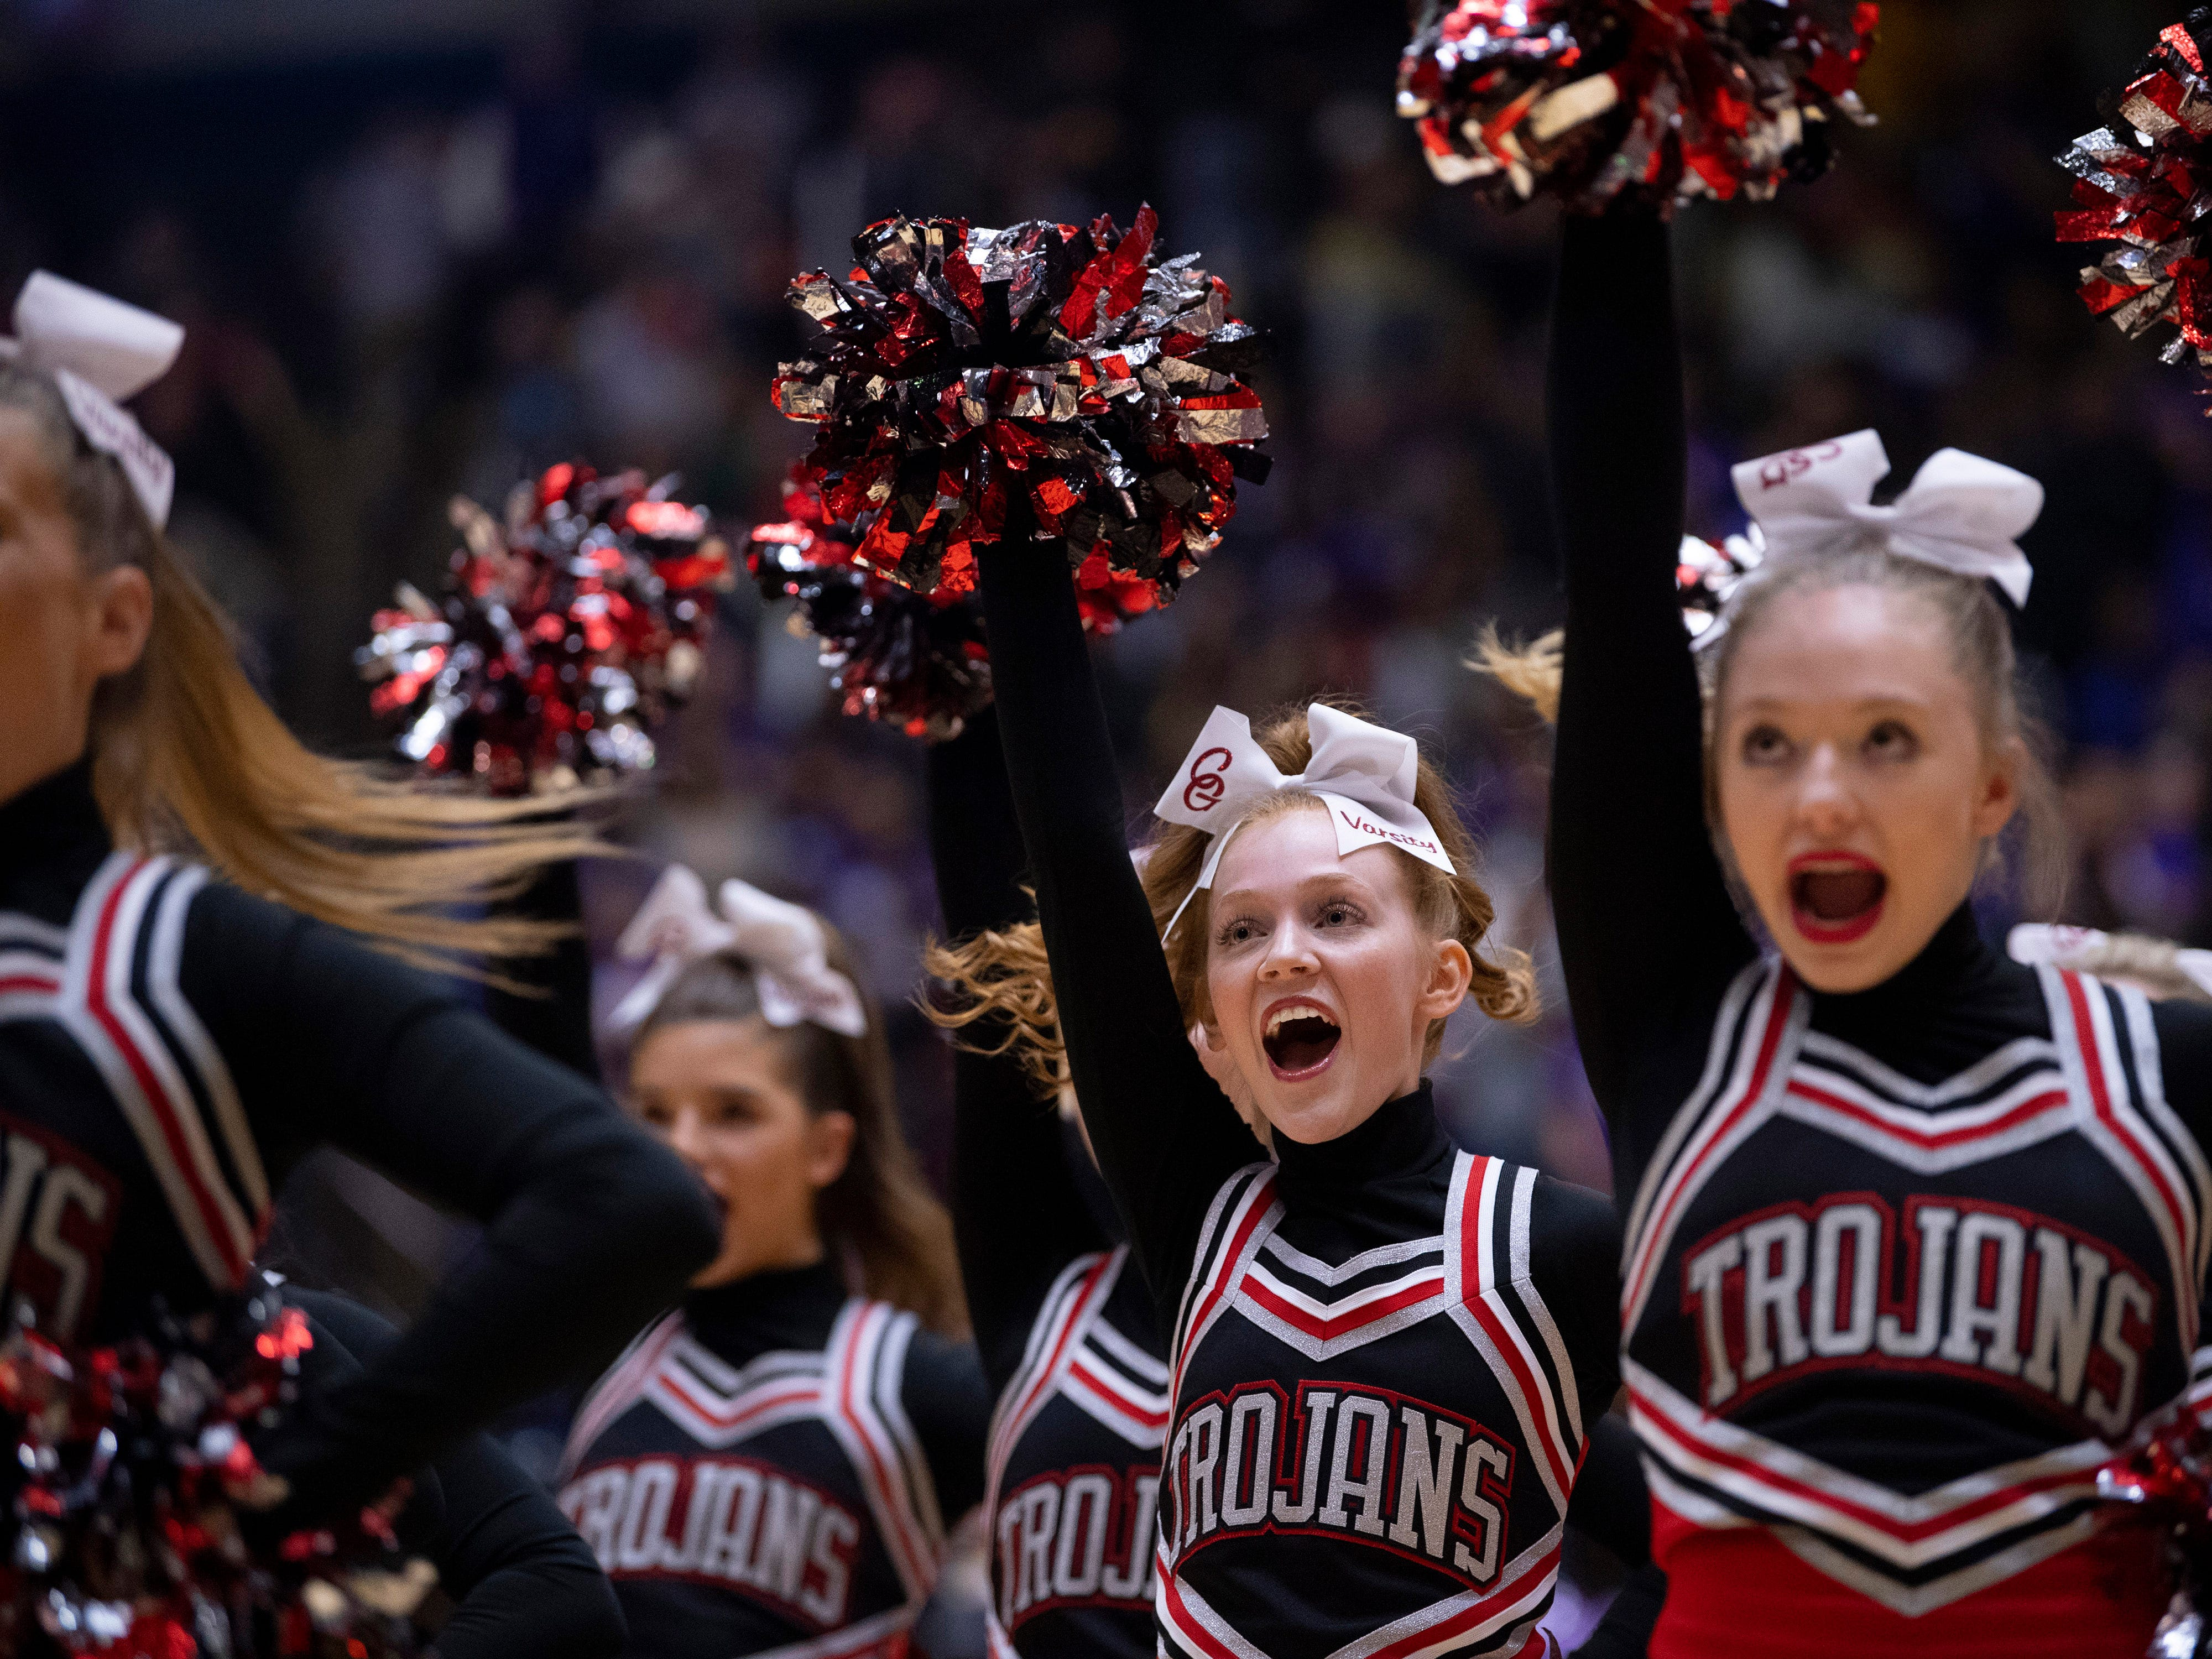 Center Grove cheerleaders pump up the fans during the 4A Boys Indiana Semi-State Basketball Tournament game against Ben Davis at the Hatchet House in Washington, Ind., Saturday afternoon.